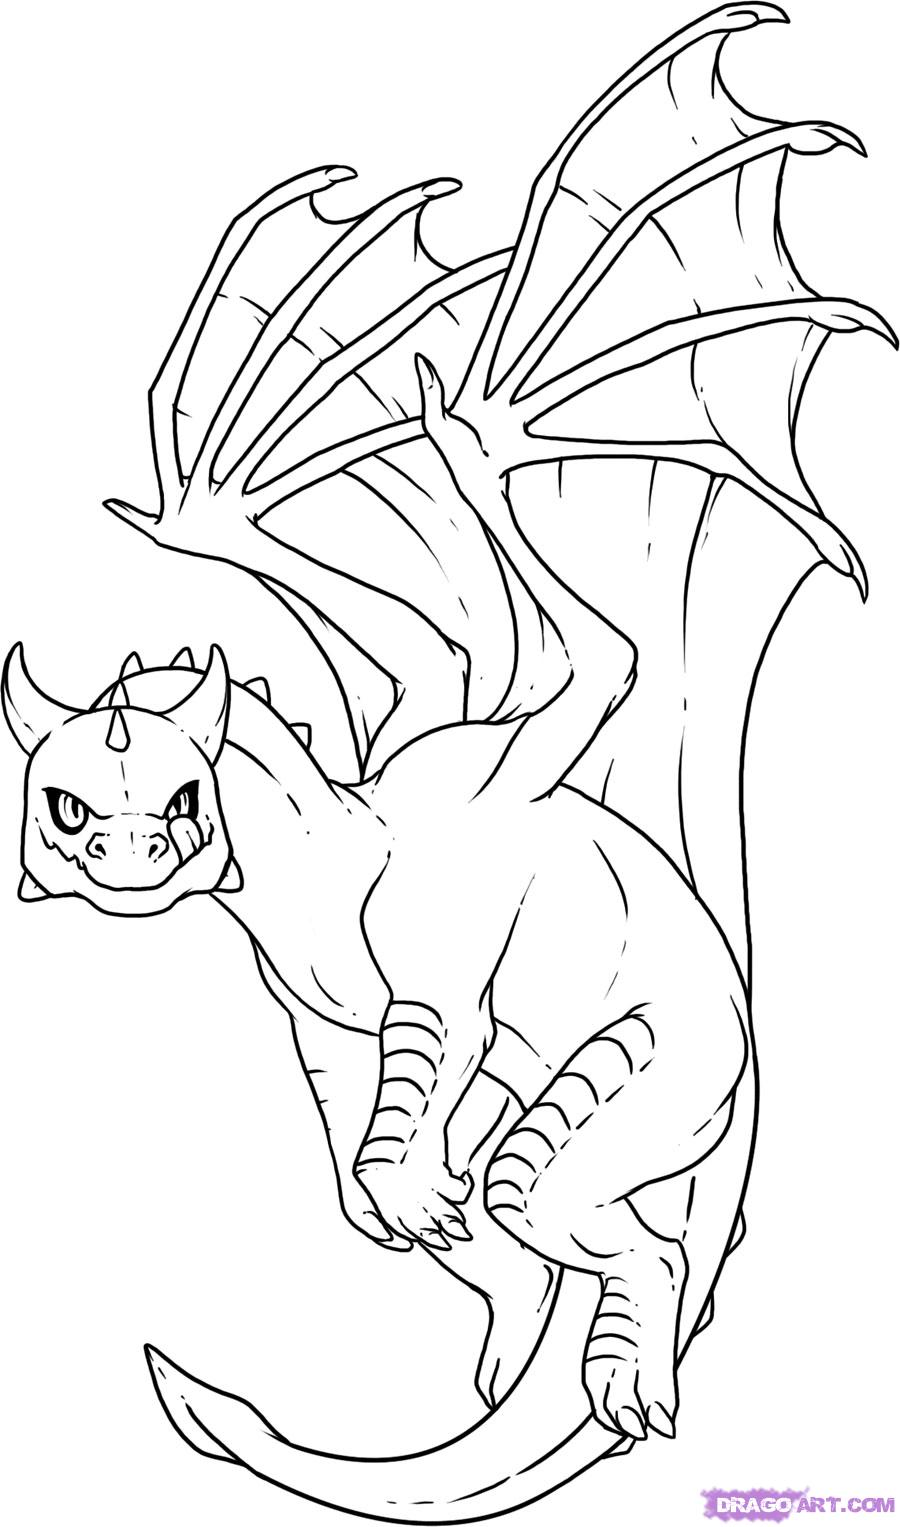 900x1527 Coloring Pages Excellent Coloring Pages Draw A Simple Dragon